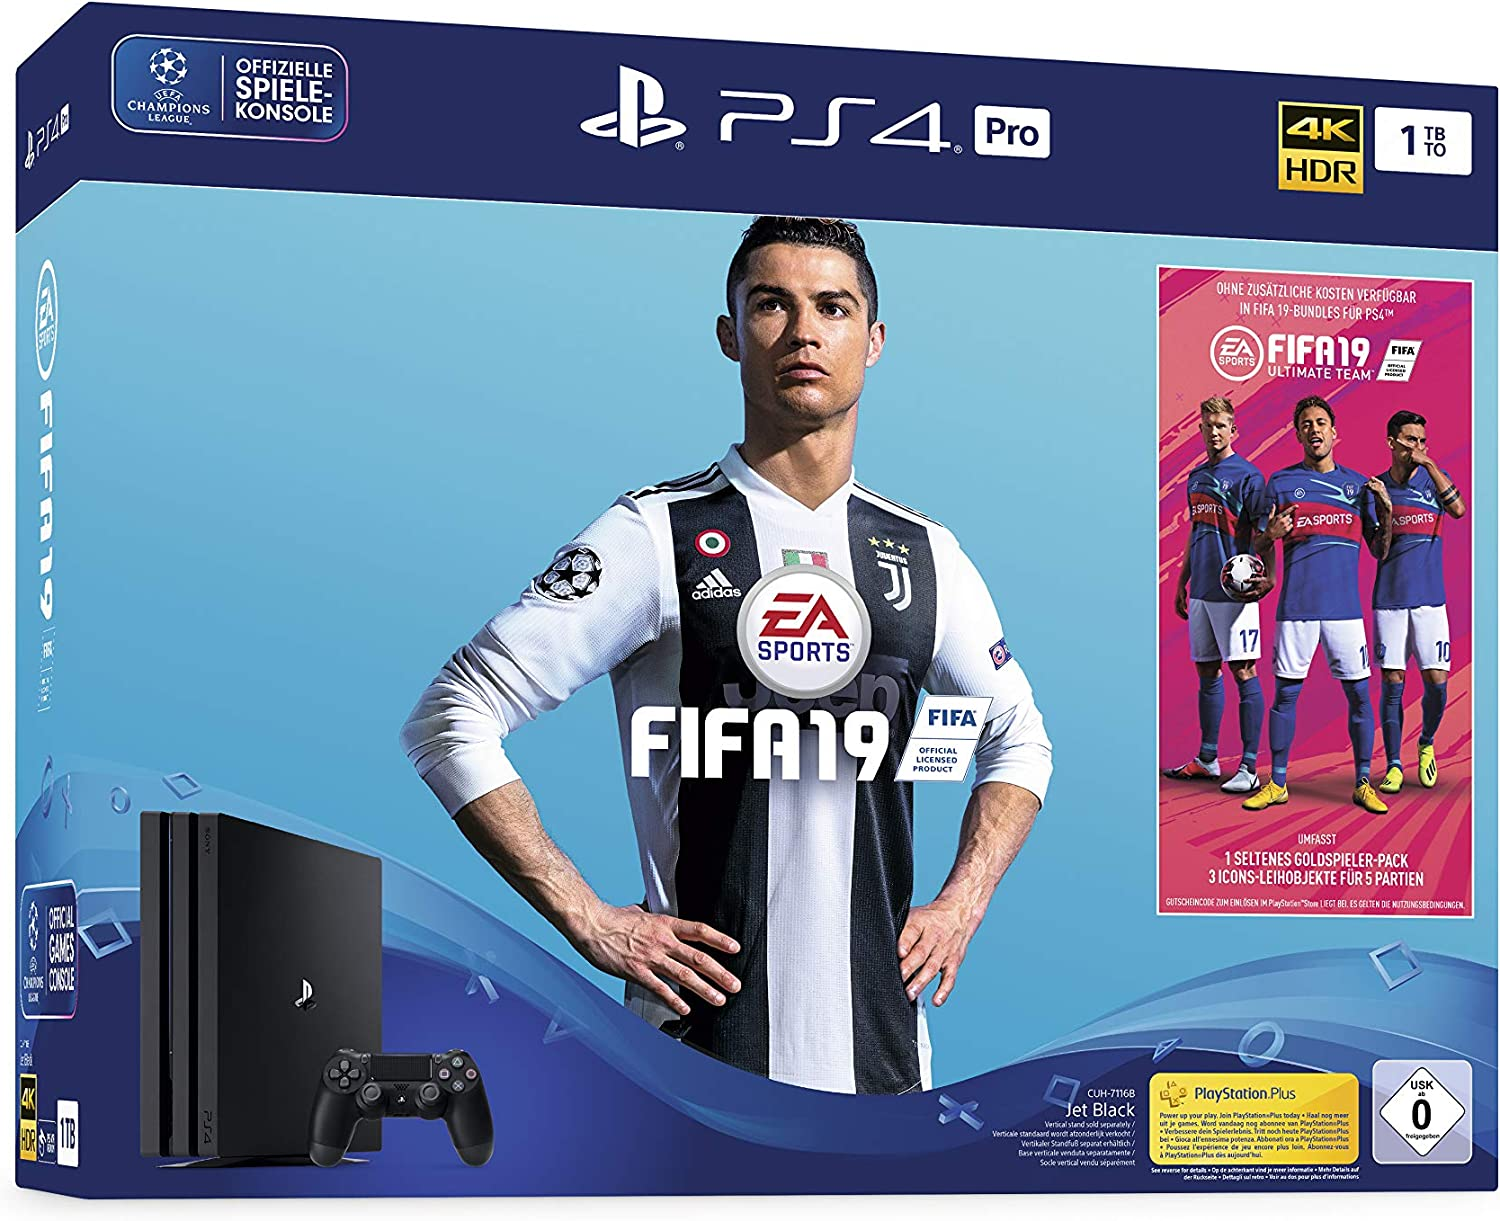 Sony PlayStation 4 Pro 1TB + FIFA 19 Negro 1000 GB Wifi - Videoconsolas (PlayStation 4 Pro, Negro, 8192 MB, GDDR5, AMD Jaguar, AMD Radeon): Amazon.es: Videojuegos